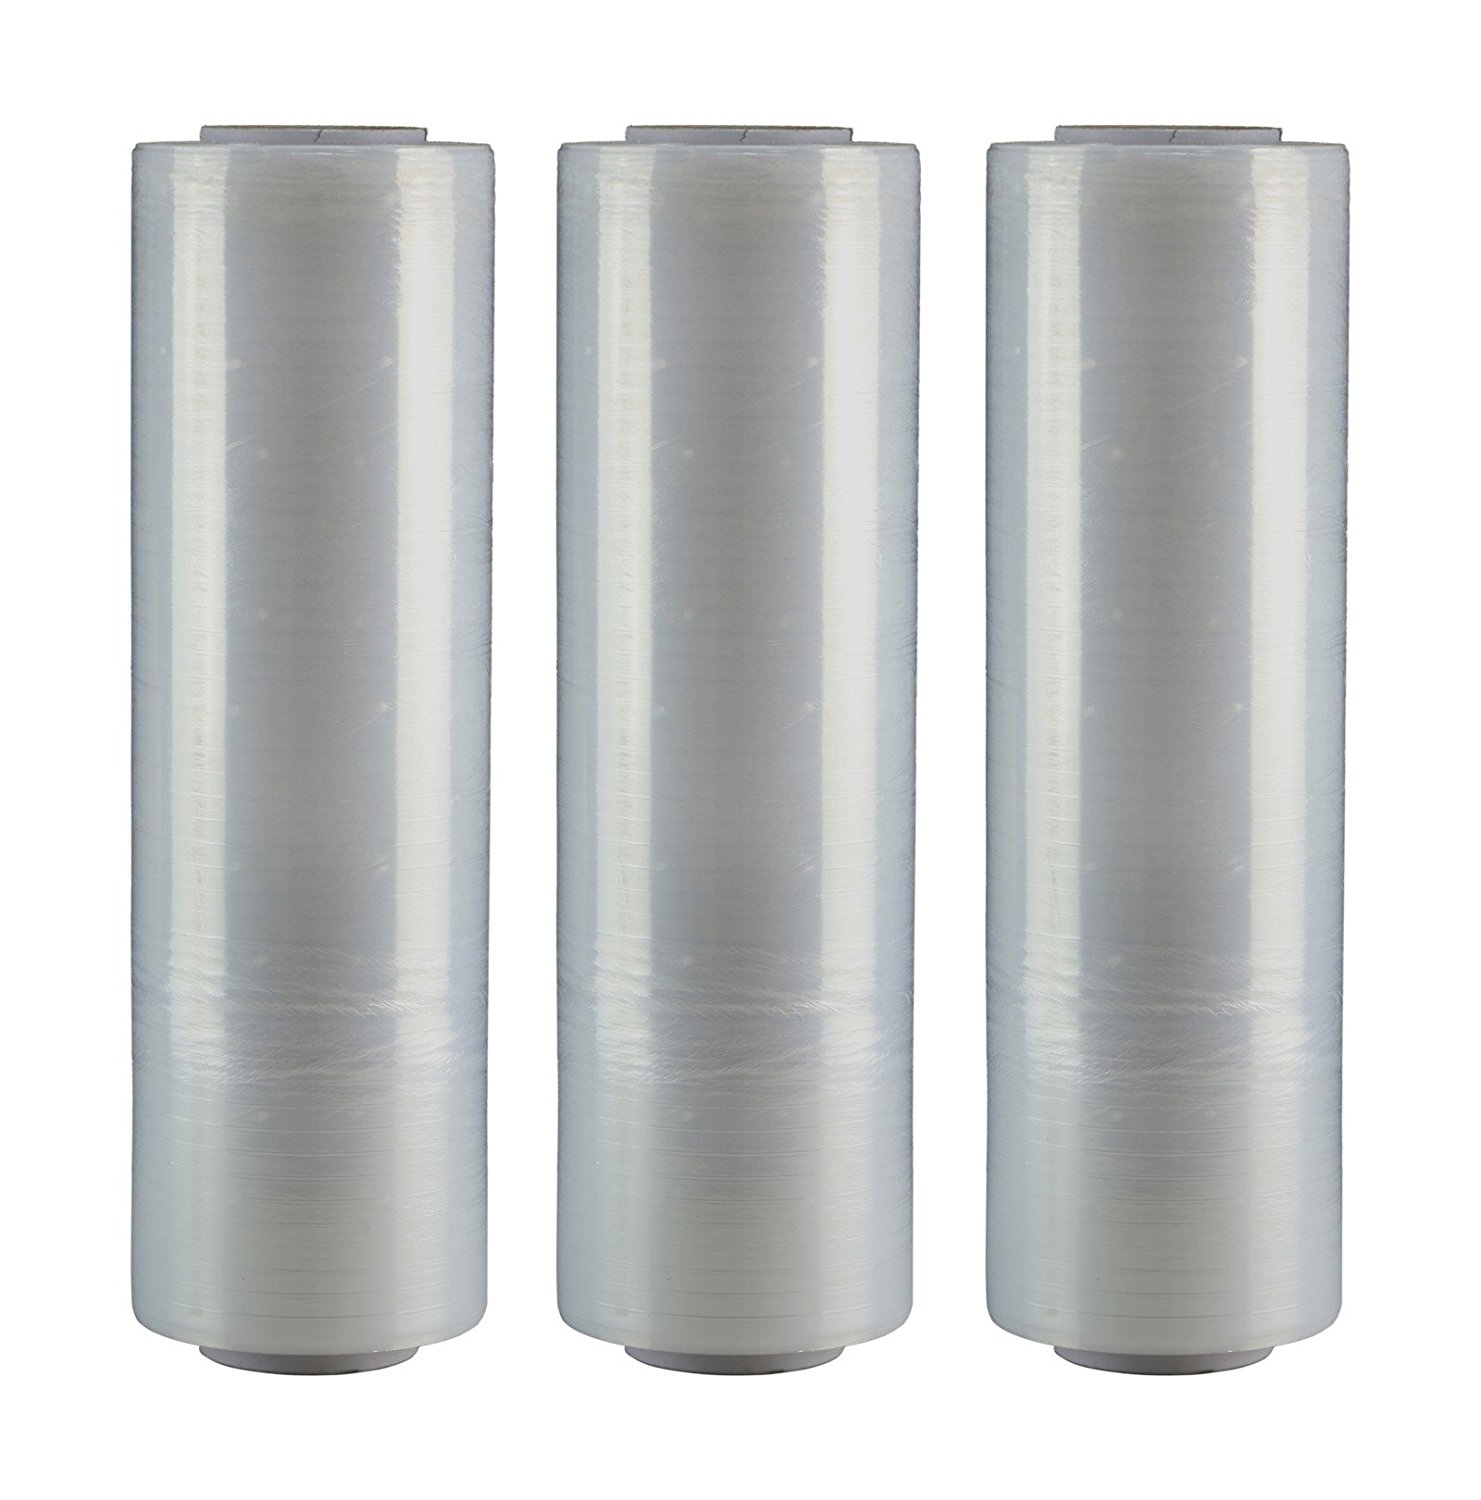 """AMERIQUE Shrink Wrap 3 Pack (4500FTX18"""", 30LBS Total): Stretch Film Plastic Wrap - Industrial Strength Hand Stretch Wrap, 18""""x 1,500 FT Per Roll, 80 Gauge Shrink Film / Pallet Wrap – Clear"""